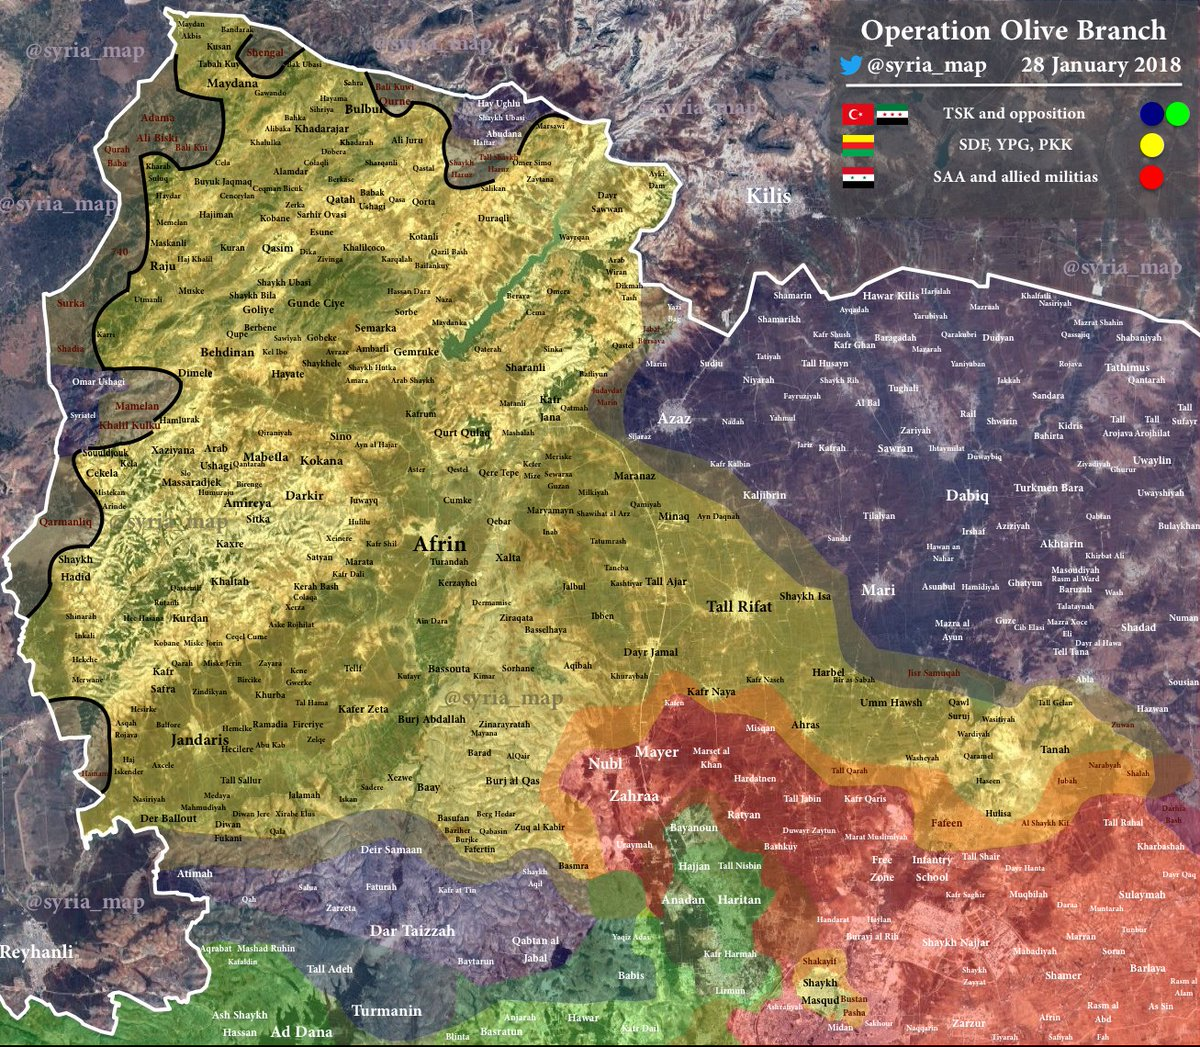 Turkish Army Captured Key Mount East Of Afrin city (Photos, Map)